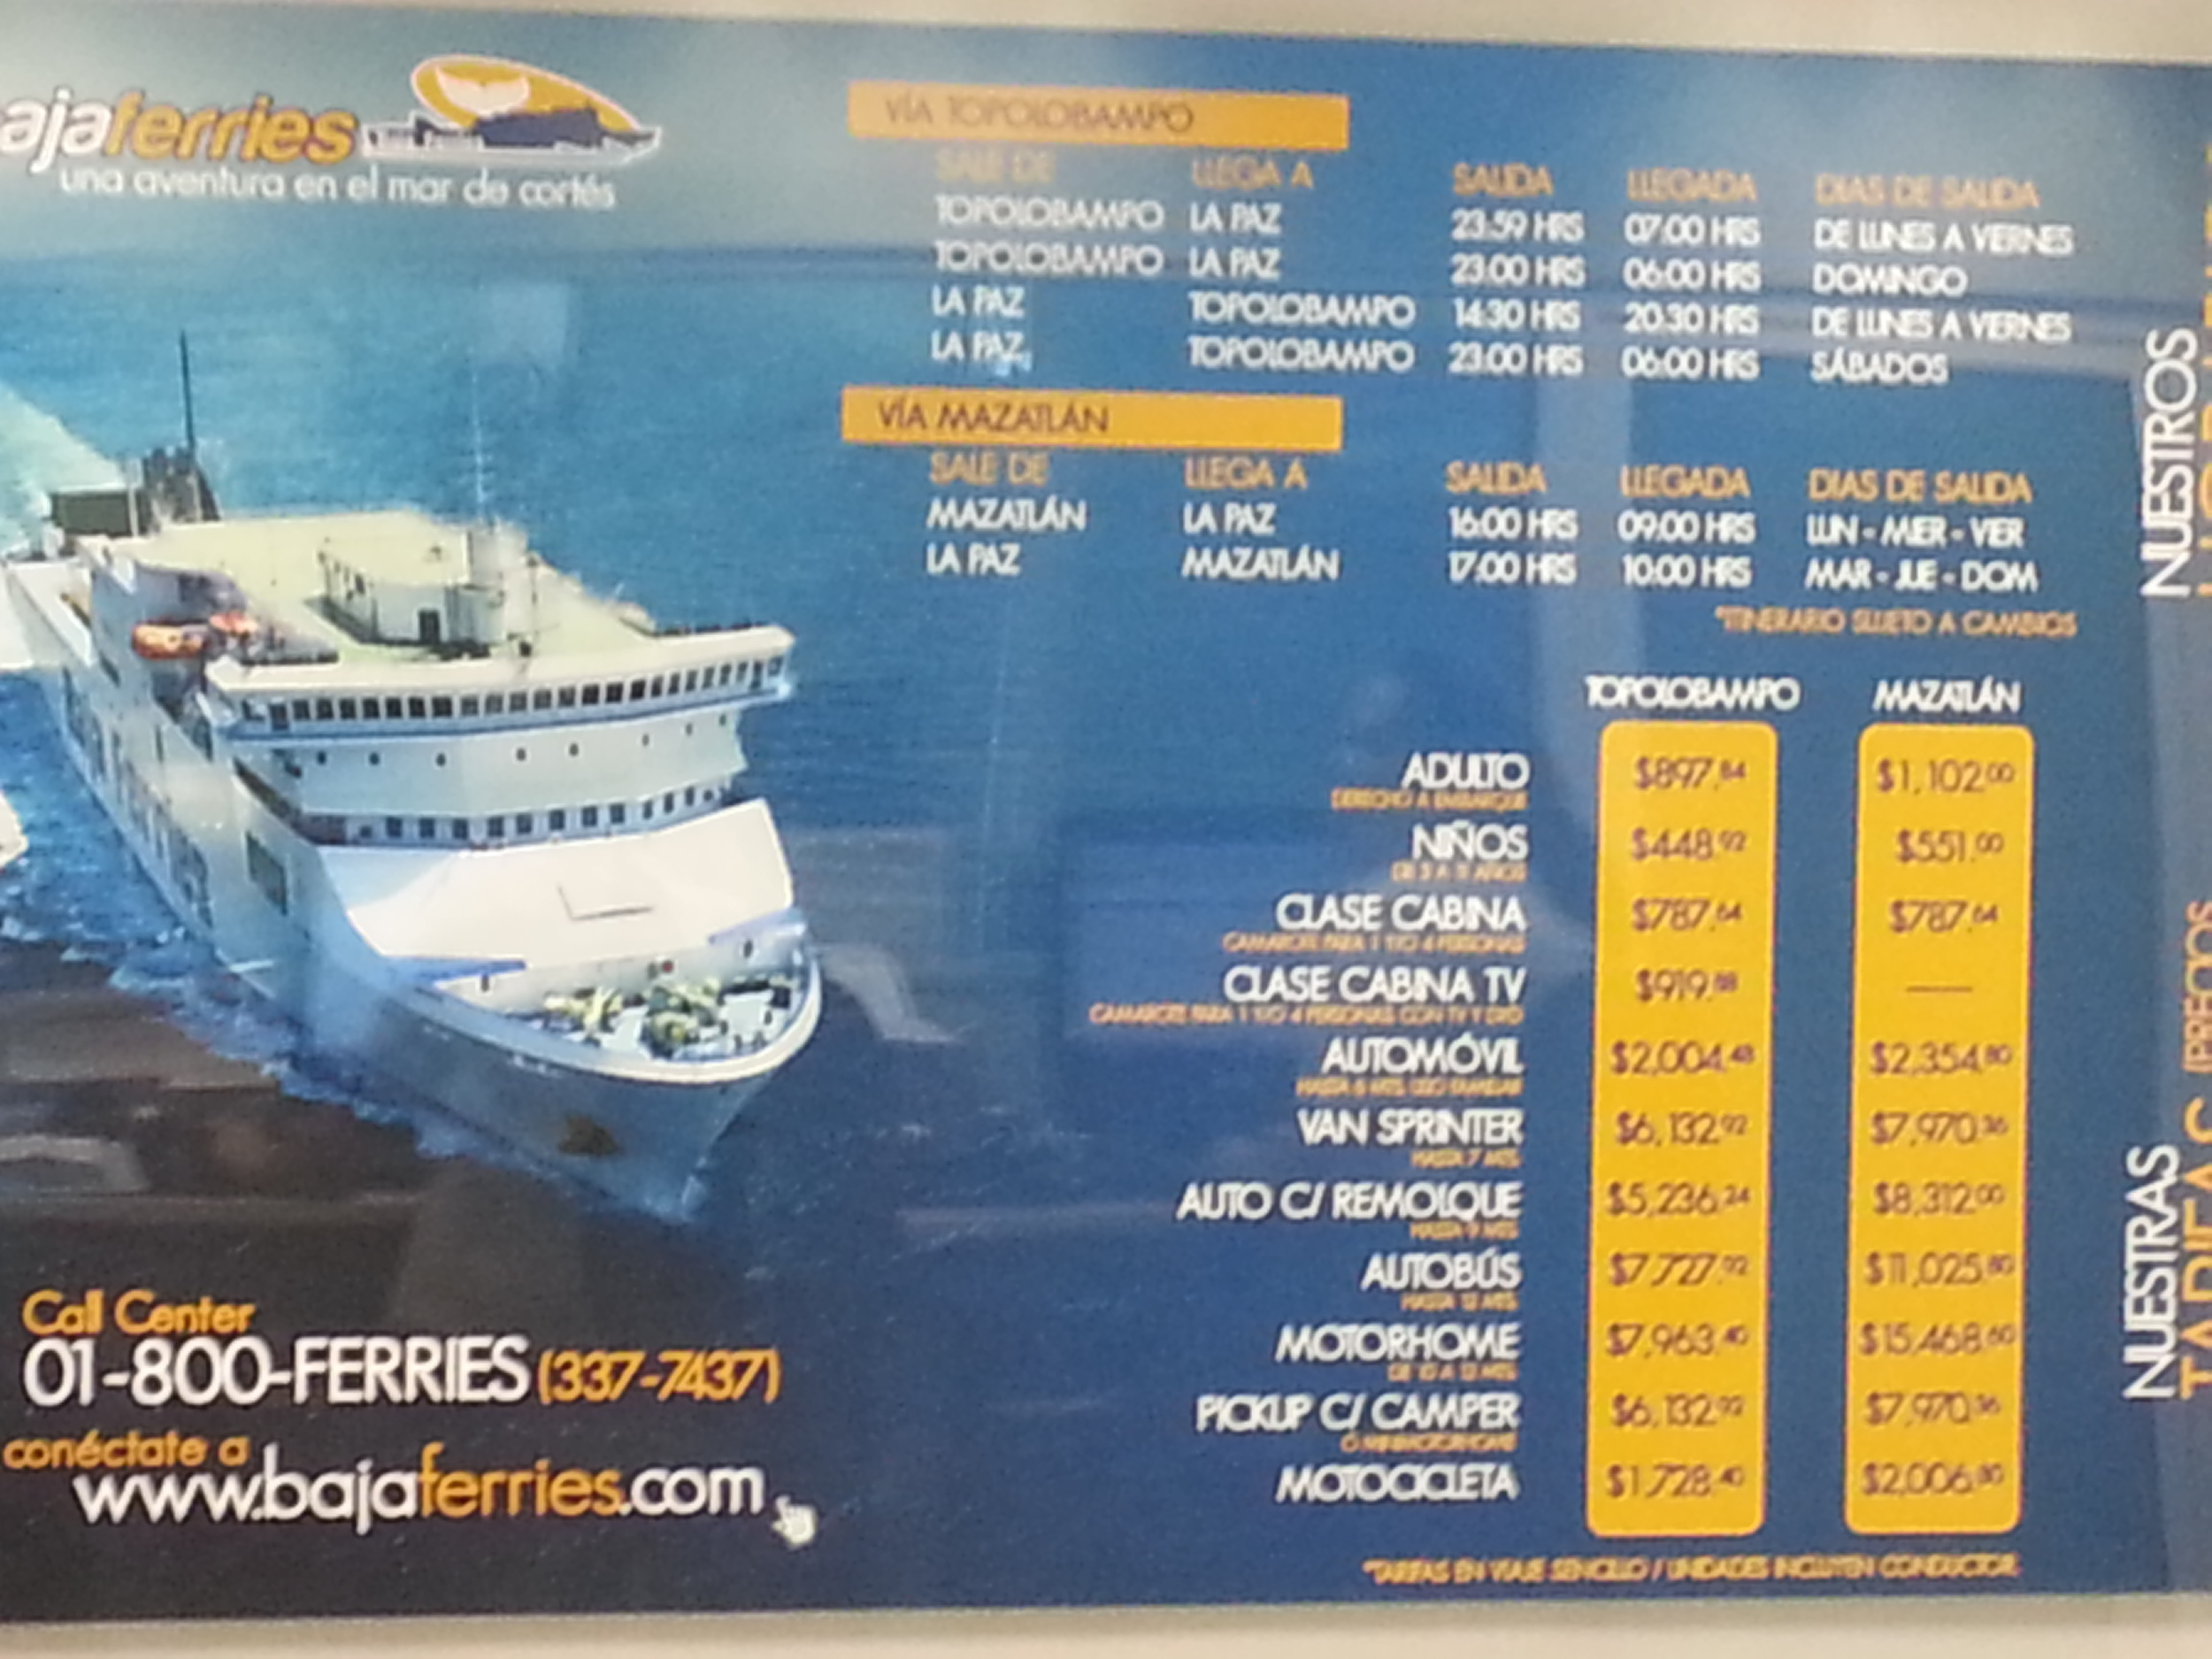 Interested? Here are the fares....